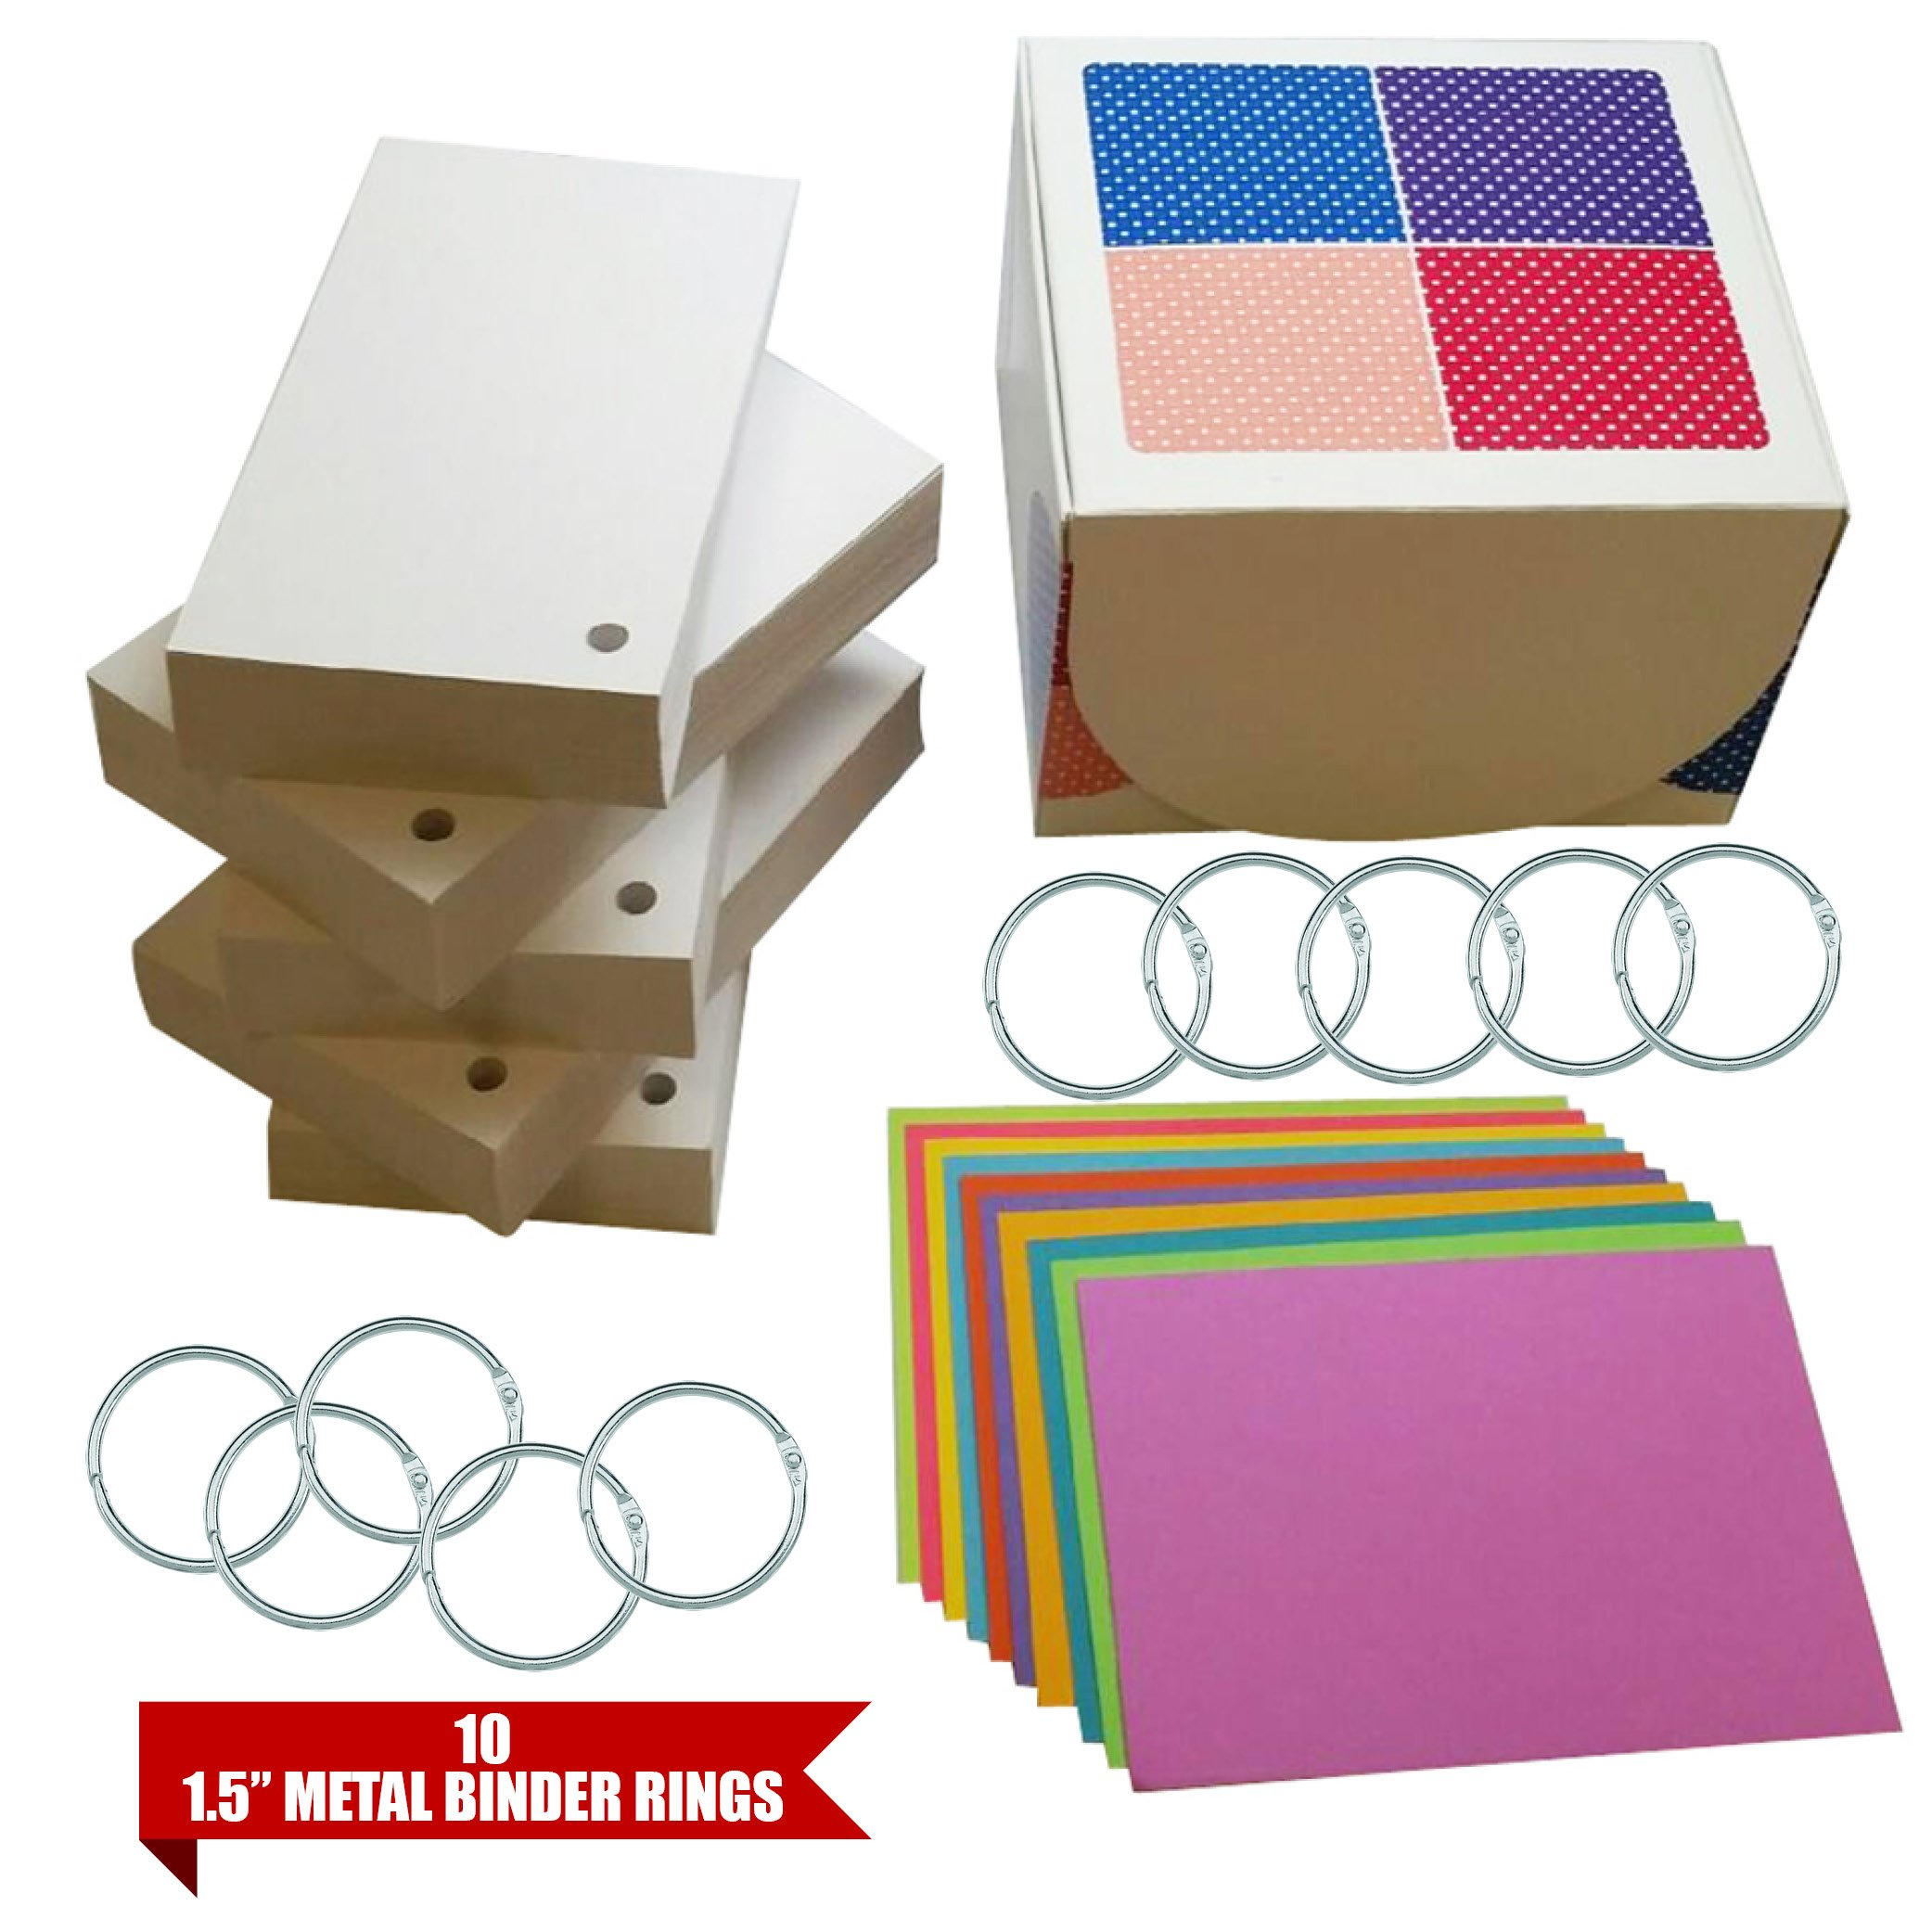 Debra Dale Designs - 110# Standard White Blank Index Cards 3x5 Box - Hole Punched Index Cards - 10 Index Card Divider Sheets - 10 Metal Rings for Index Cards - Complete Study Materials Learning System